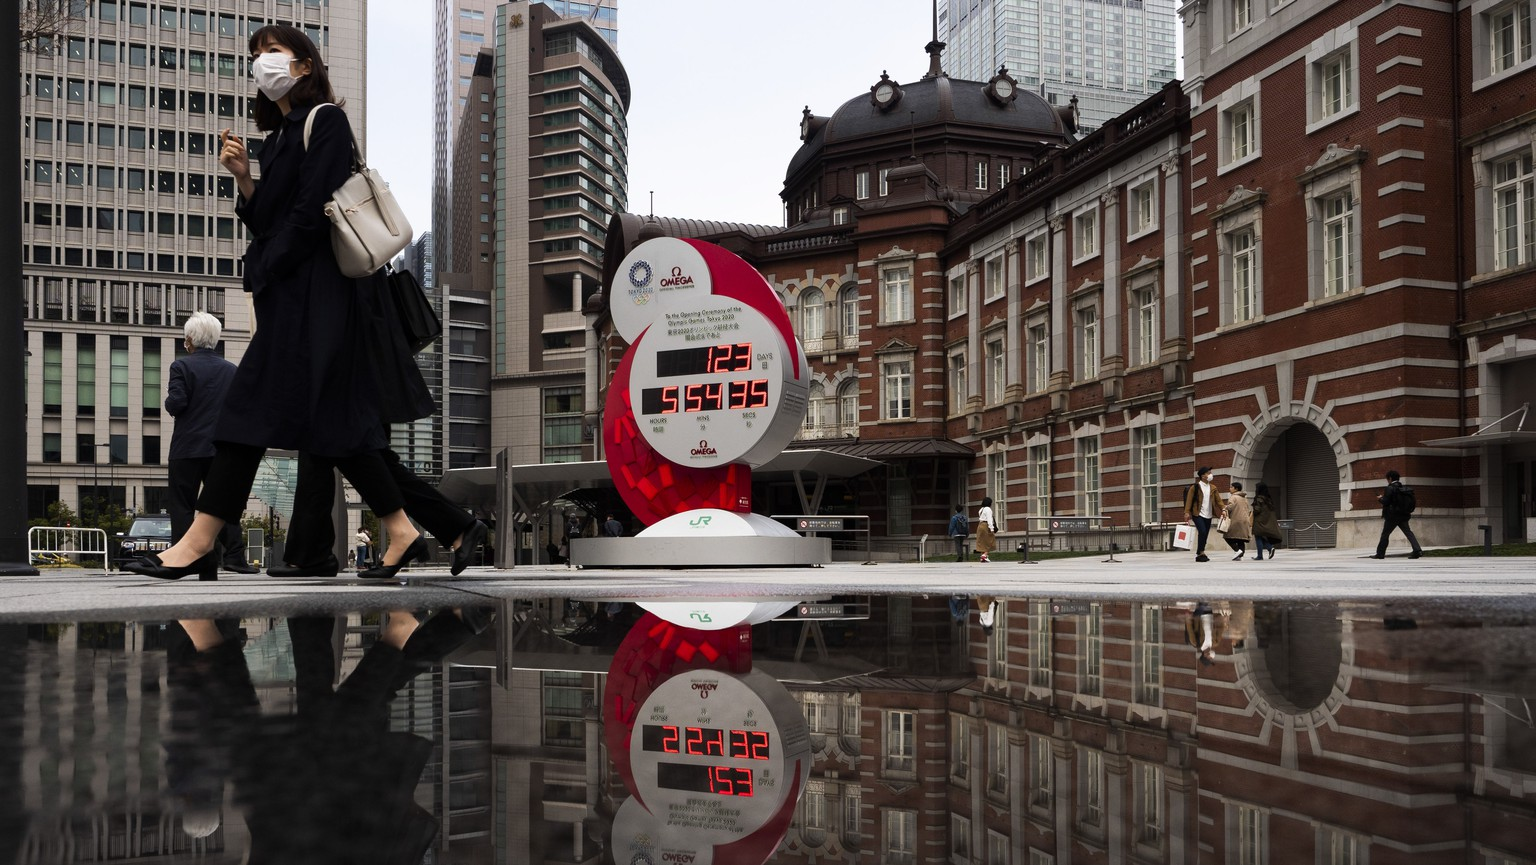 A countdown clock for the Tokyo 2020 Olympics is reflected in a puddle of water outside Tokyo Station in Tokyo, Monday, March 23, 2020. The IOC will take up to four weeks to consider postponing the Tokyo Olympics amid mounting criticism of its handling of the coronavirus crisis that now includes Canada saying it won't send a team to the games this year and the leader of track and field, the biggest sport at the games, also calling for a delay. (AP Photo/Jae C. Hong)